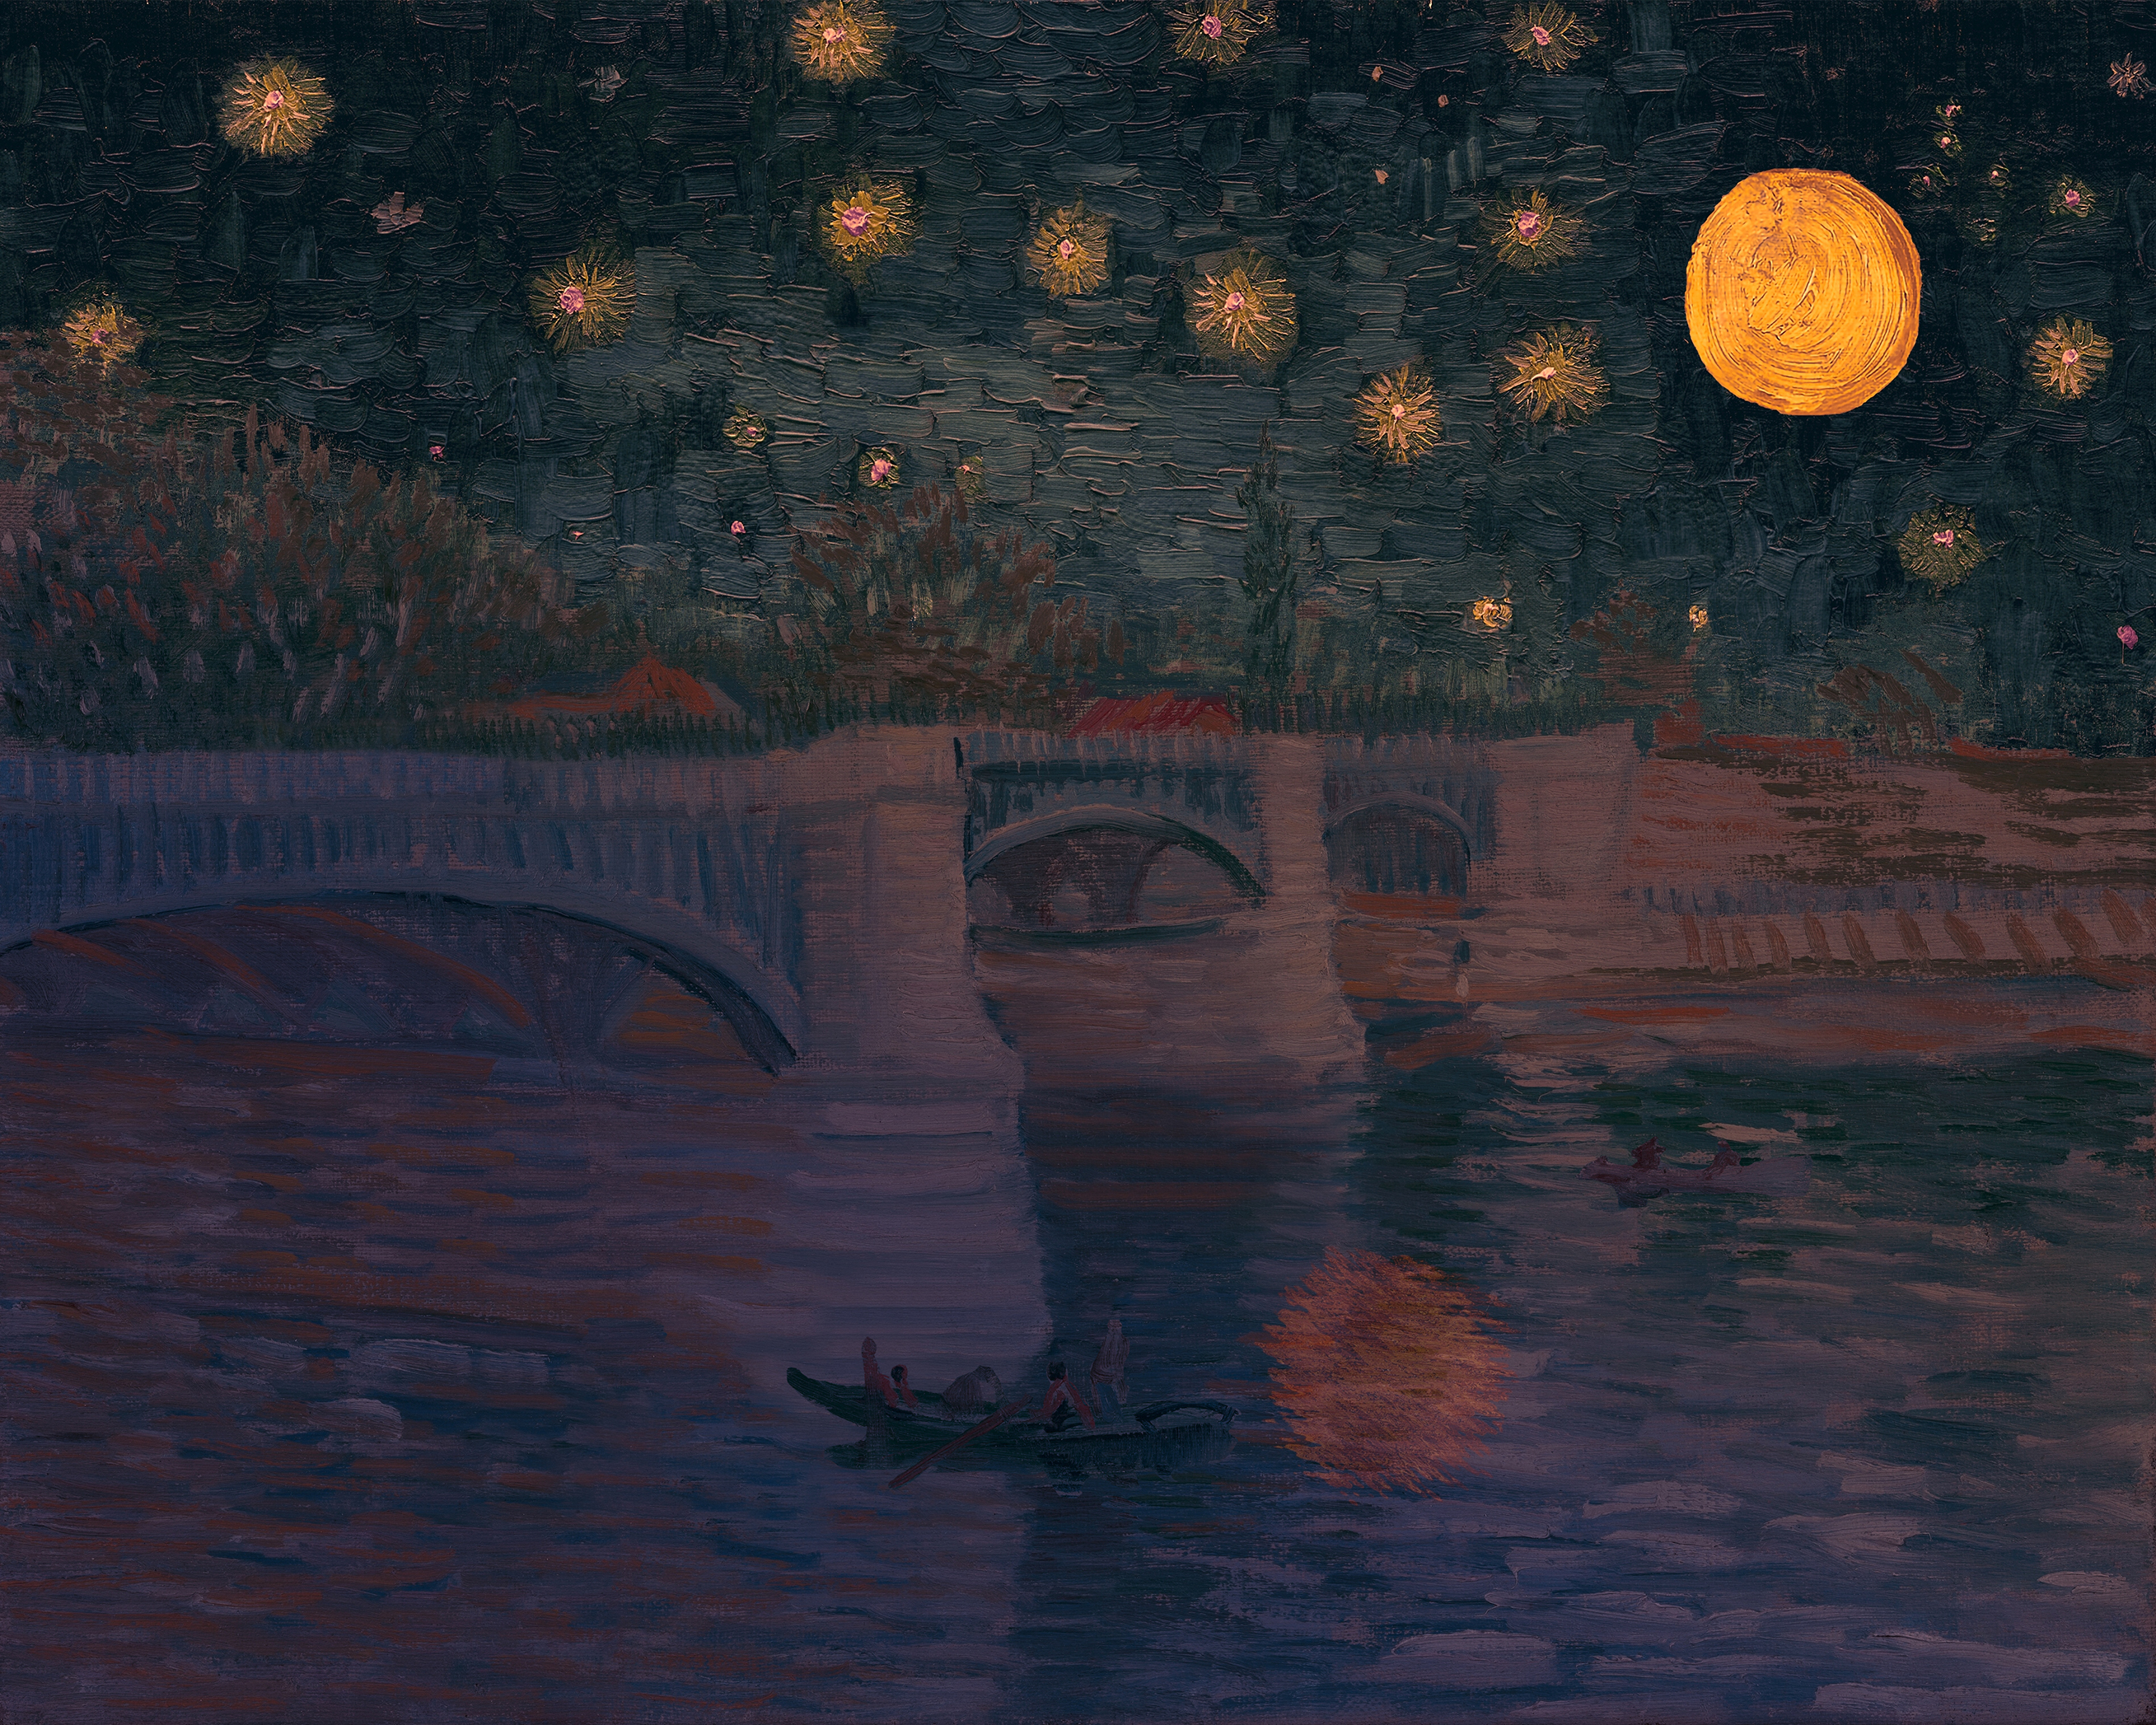 a bridge over a river with two boats and people under a blue sky with orange stars and an orange moon